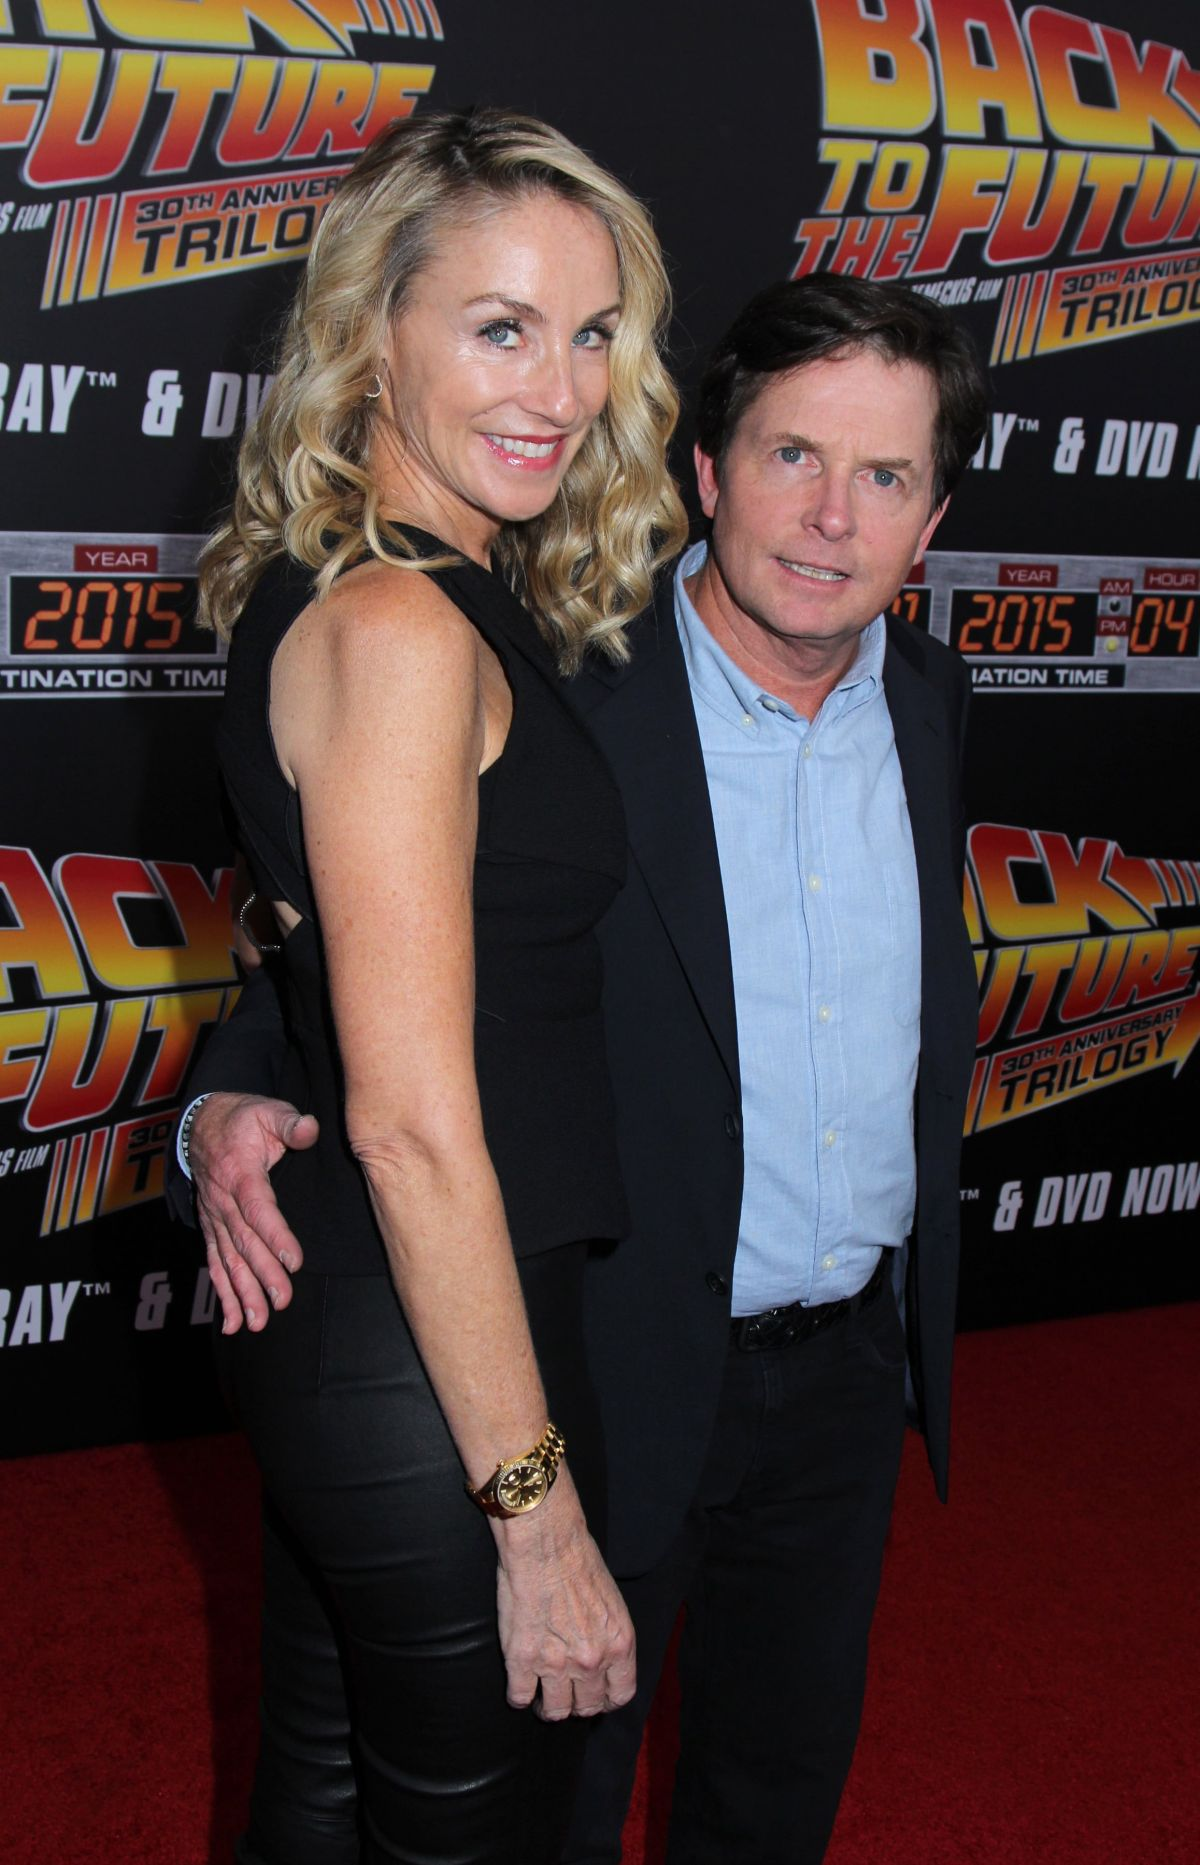 TRACY POLLAN at Back to the Future Special Anniversary Screening in New York 10/21/2015